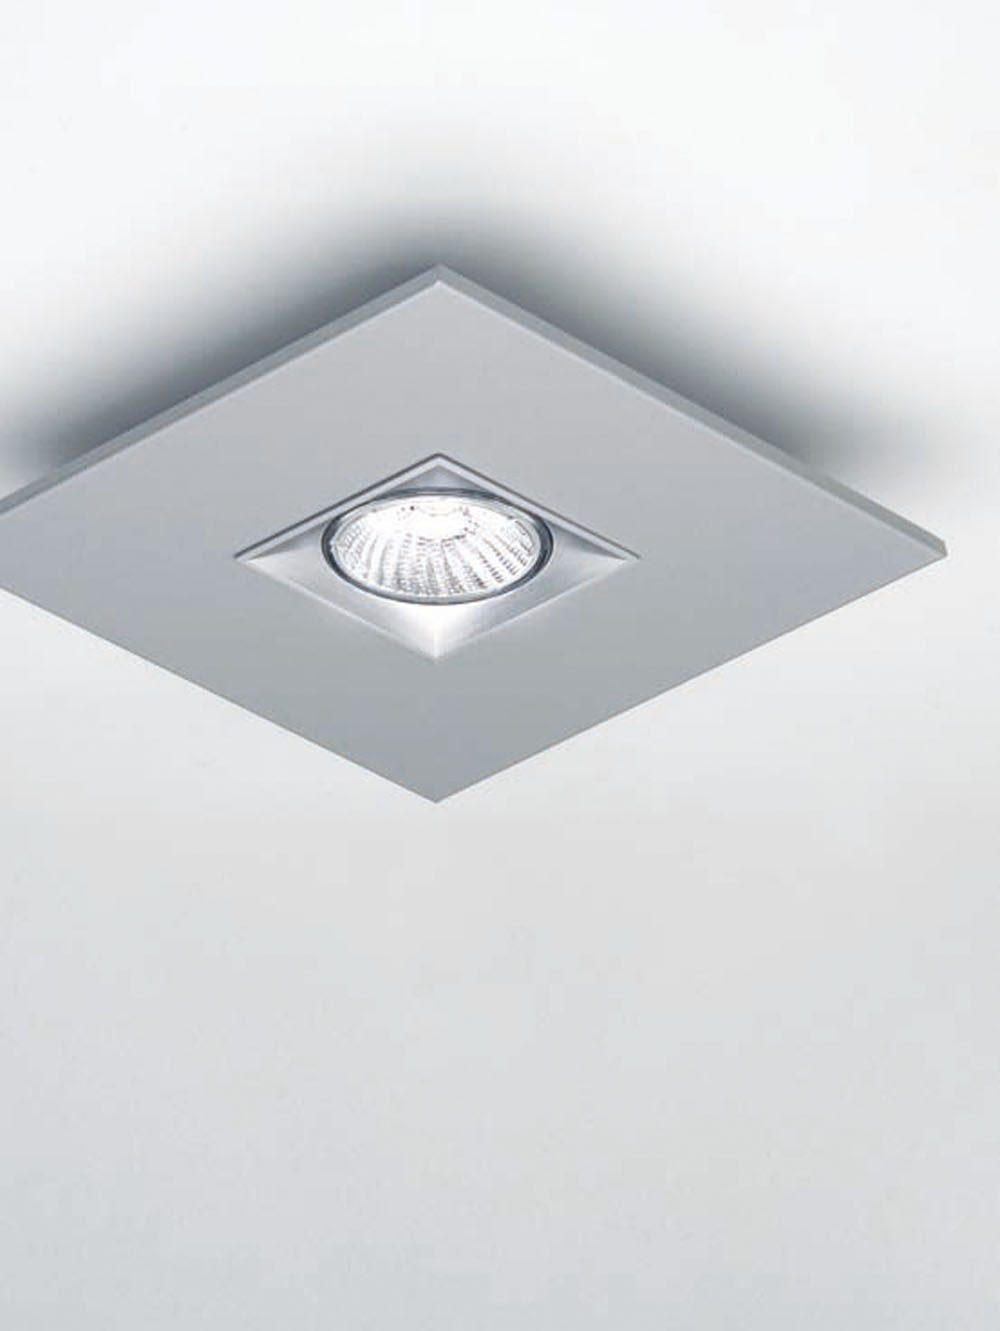 Polifemo ceiling lamp Square 20cm Gu10 75w Grey metallized